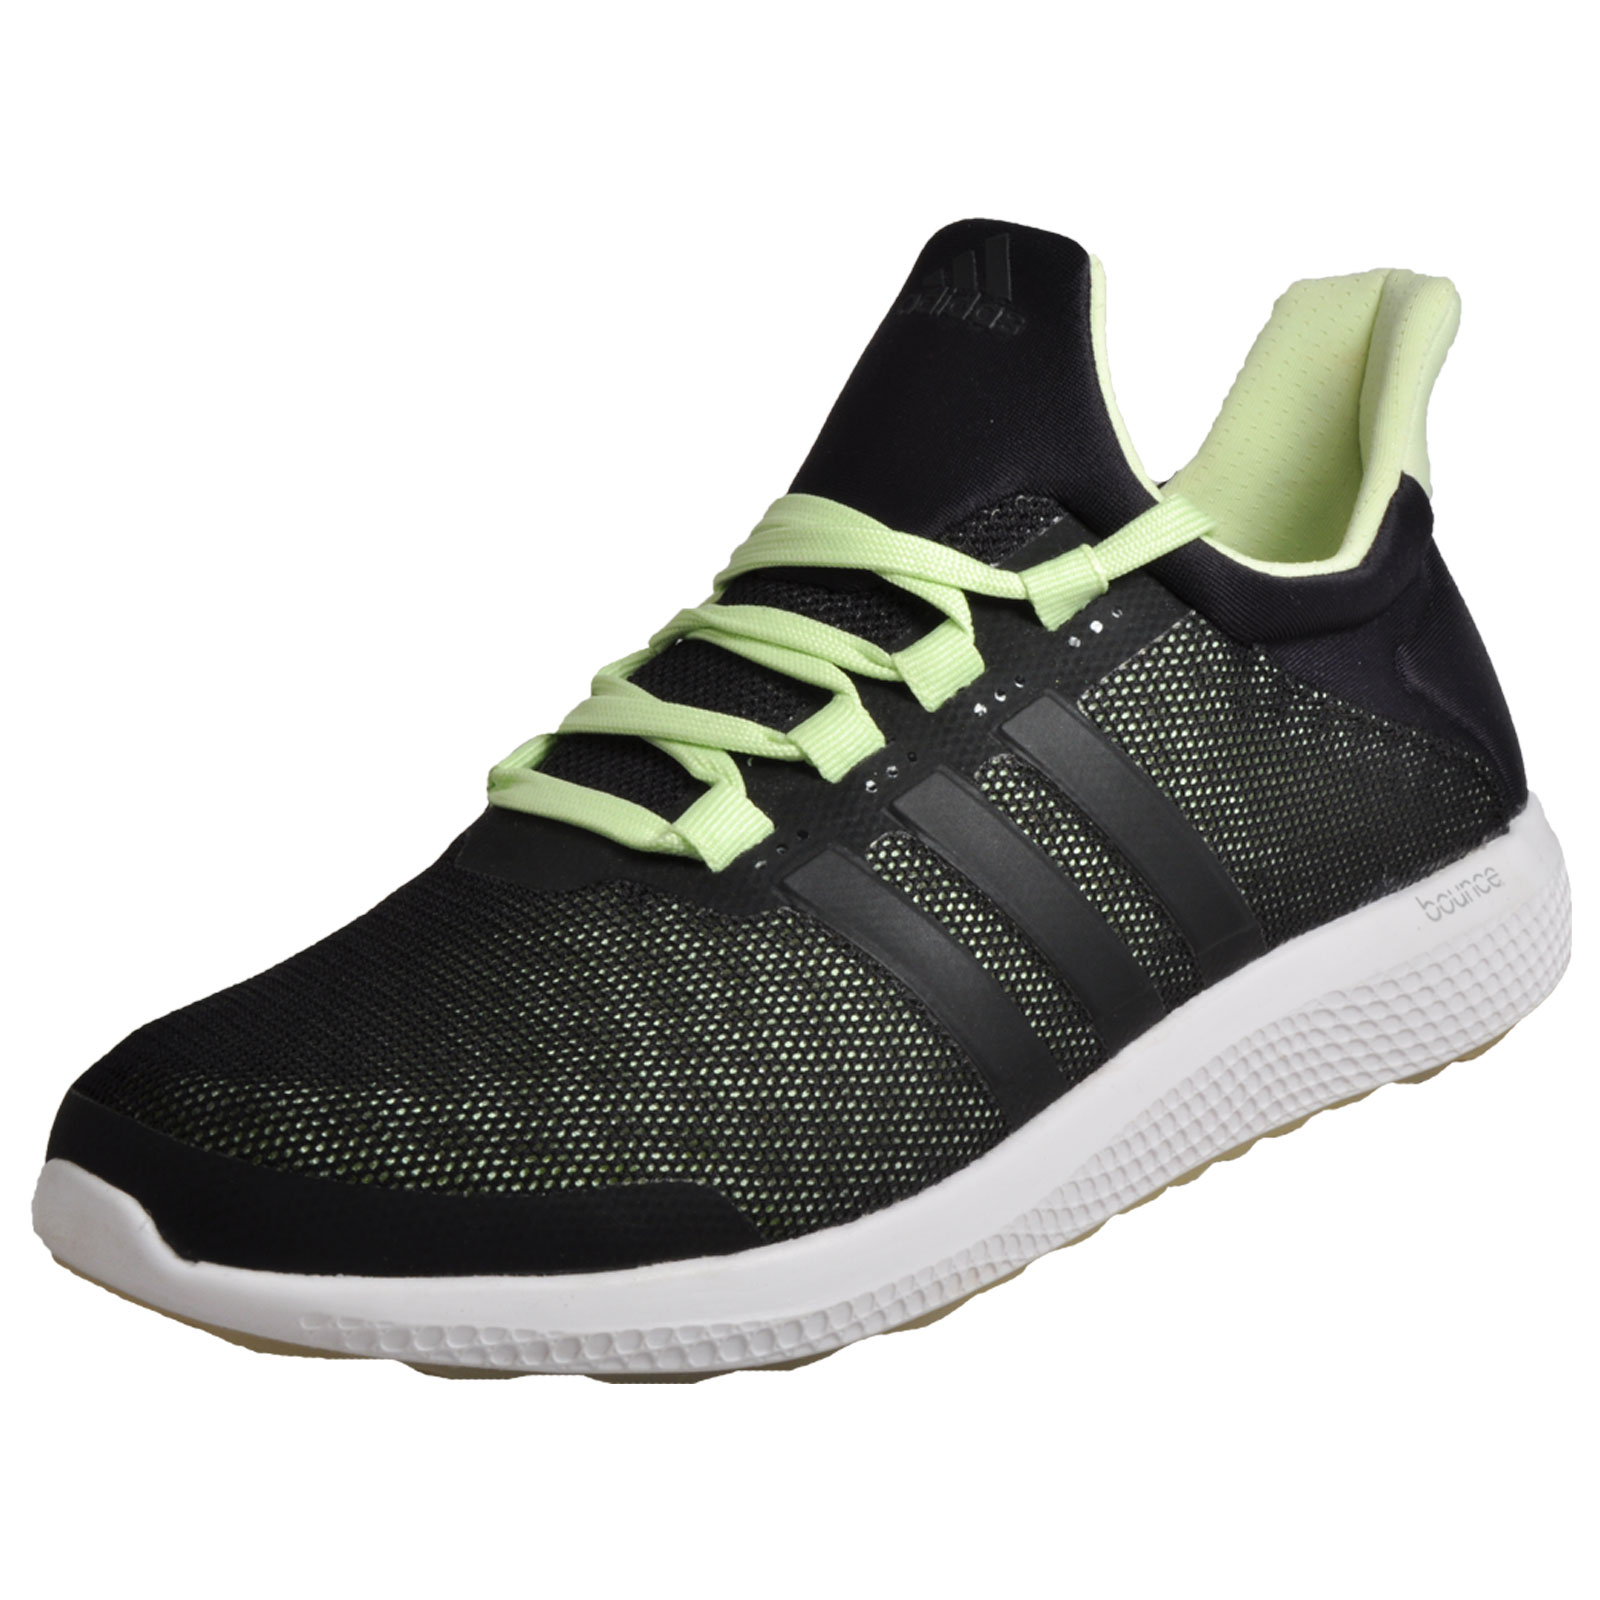 Details about Adidas CC Sonic Womens Running Fitness Gym Workout Trainers  Black 0bcedca5d6a5